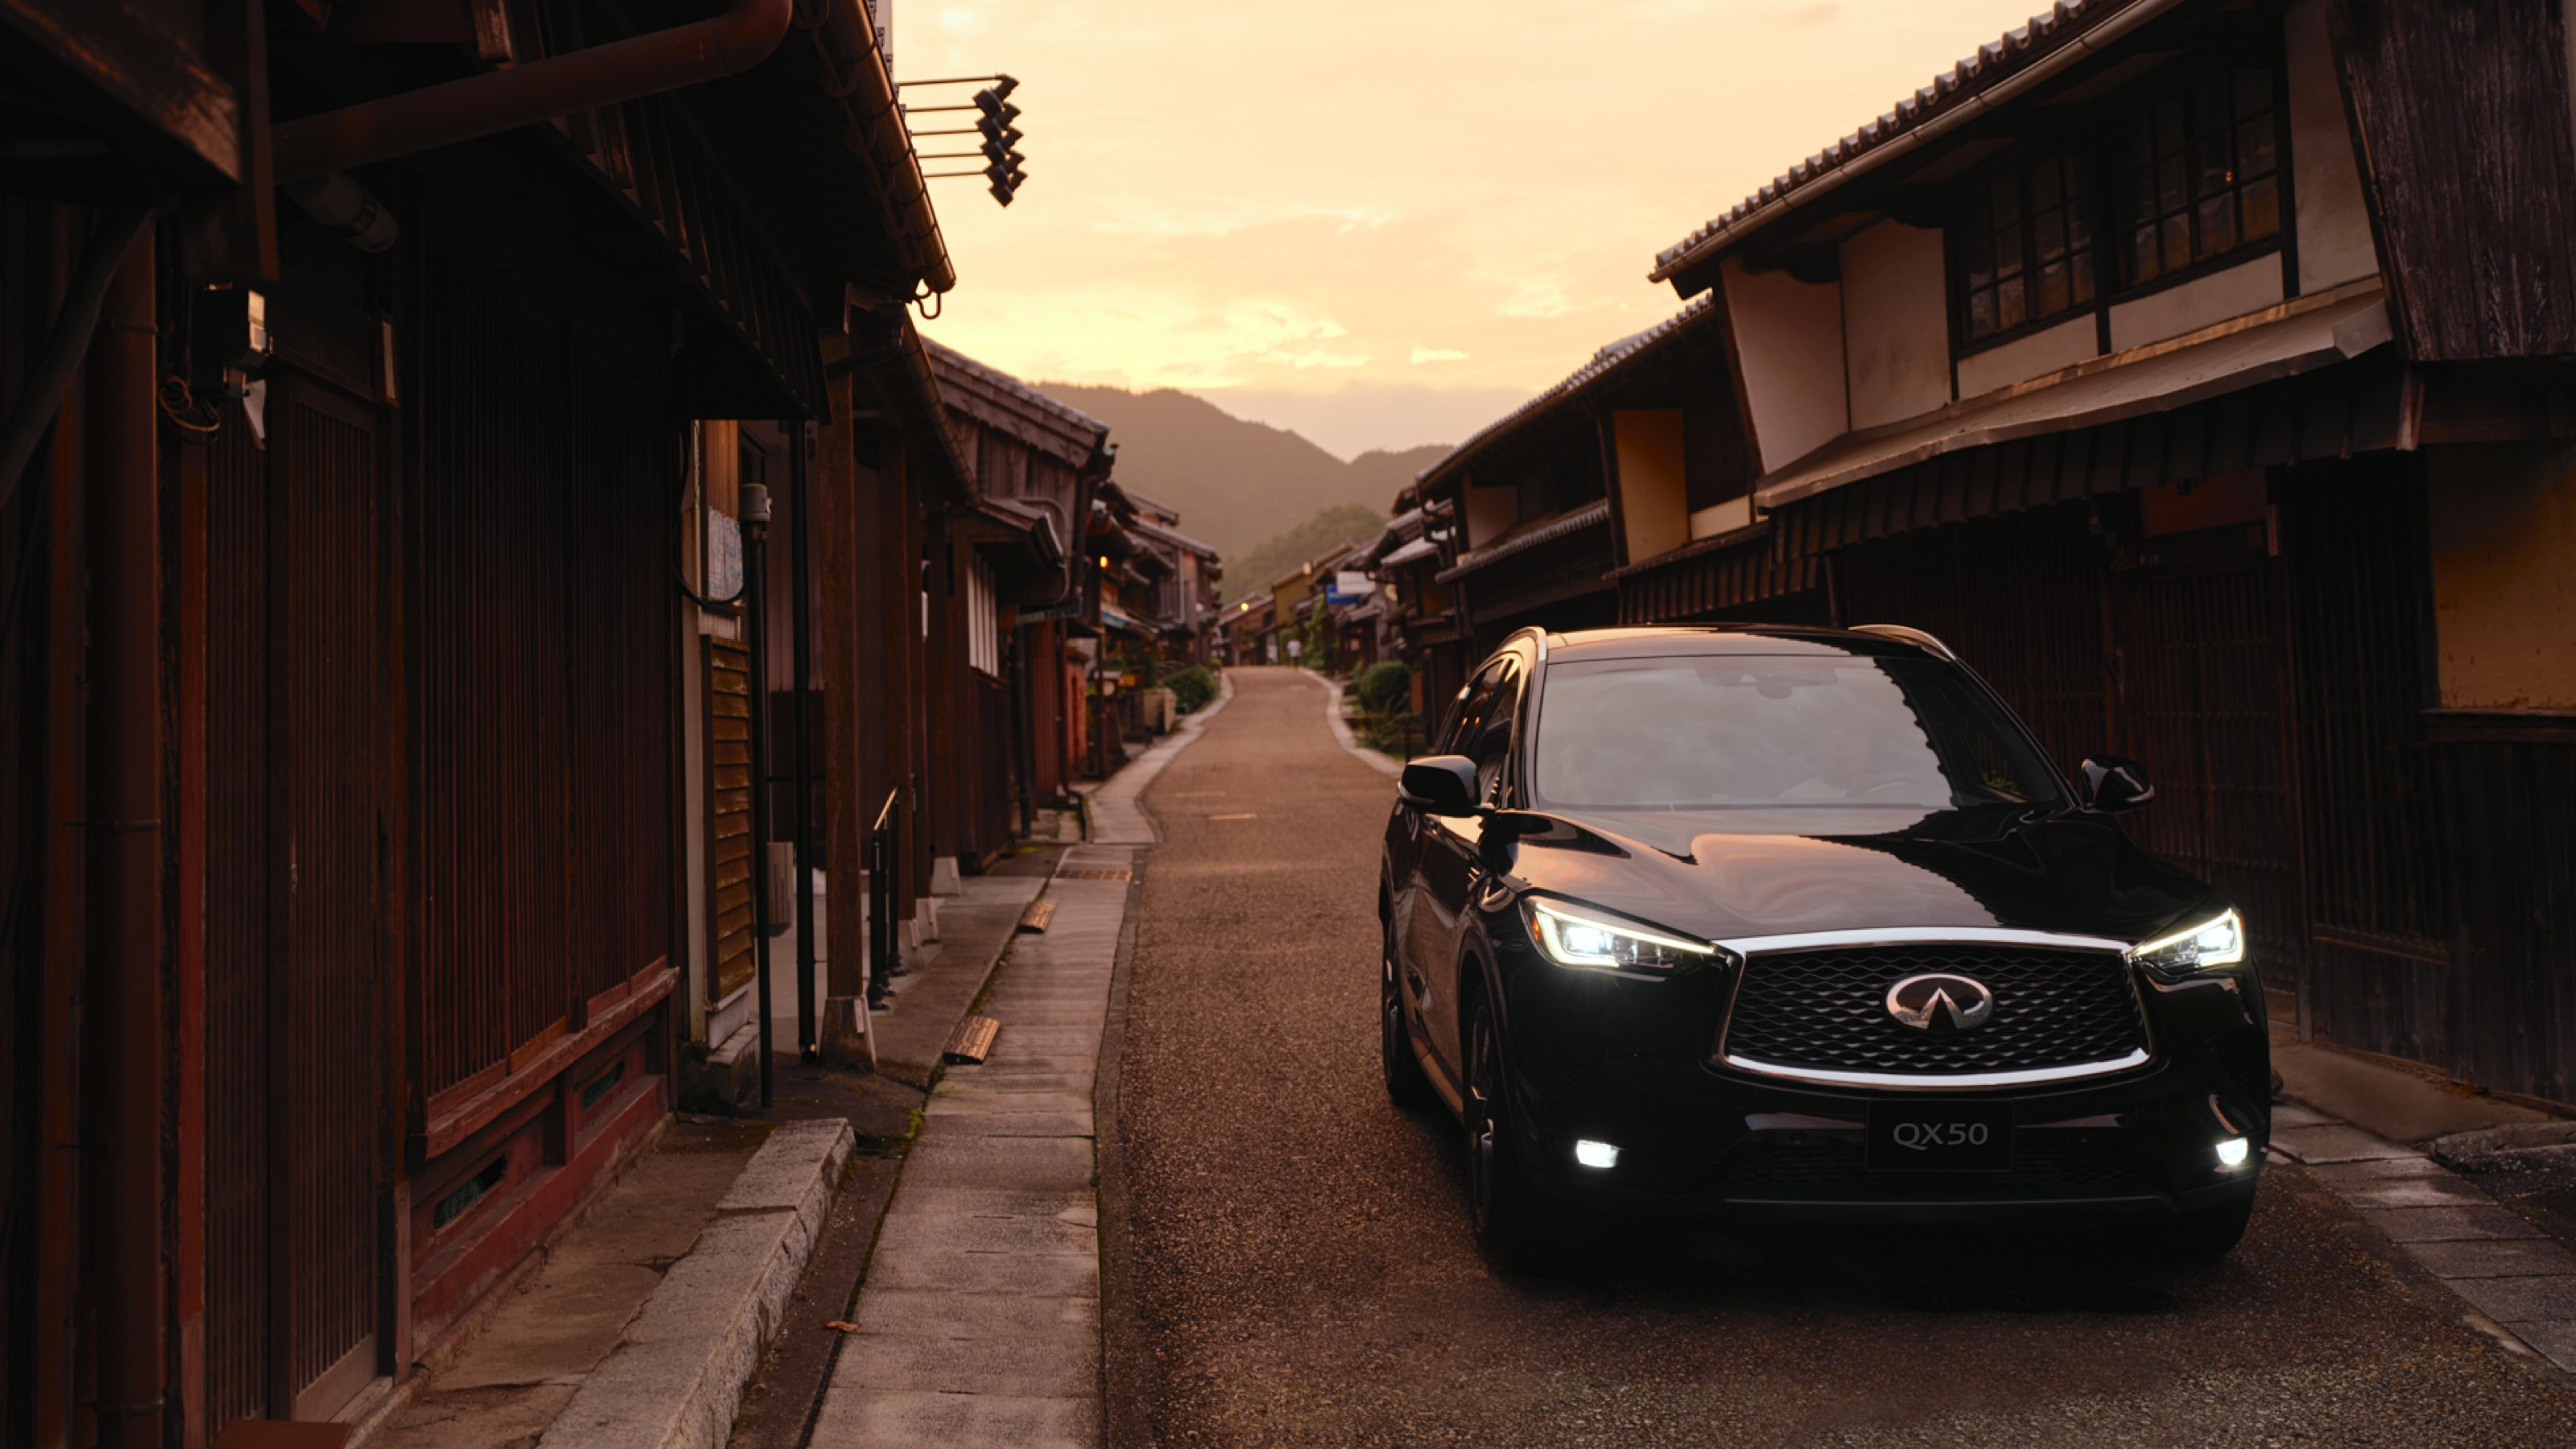 2021 INFINITI QX50 through Kyoto streets